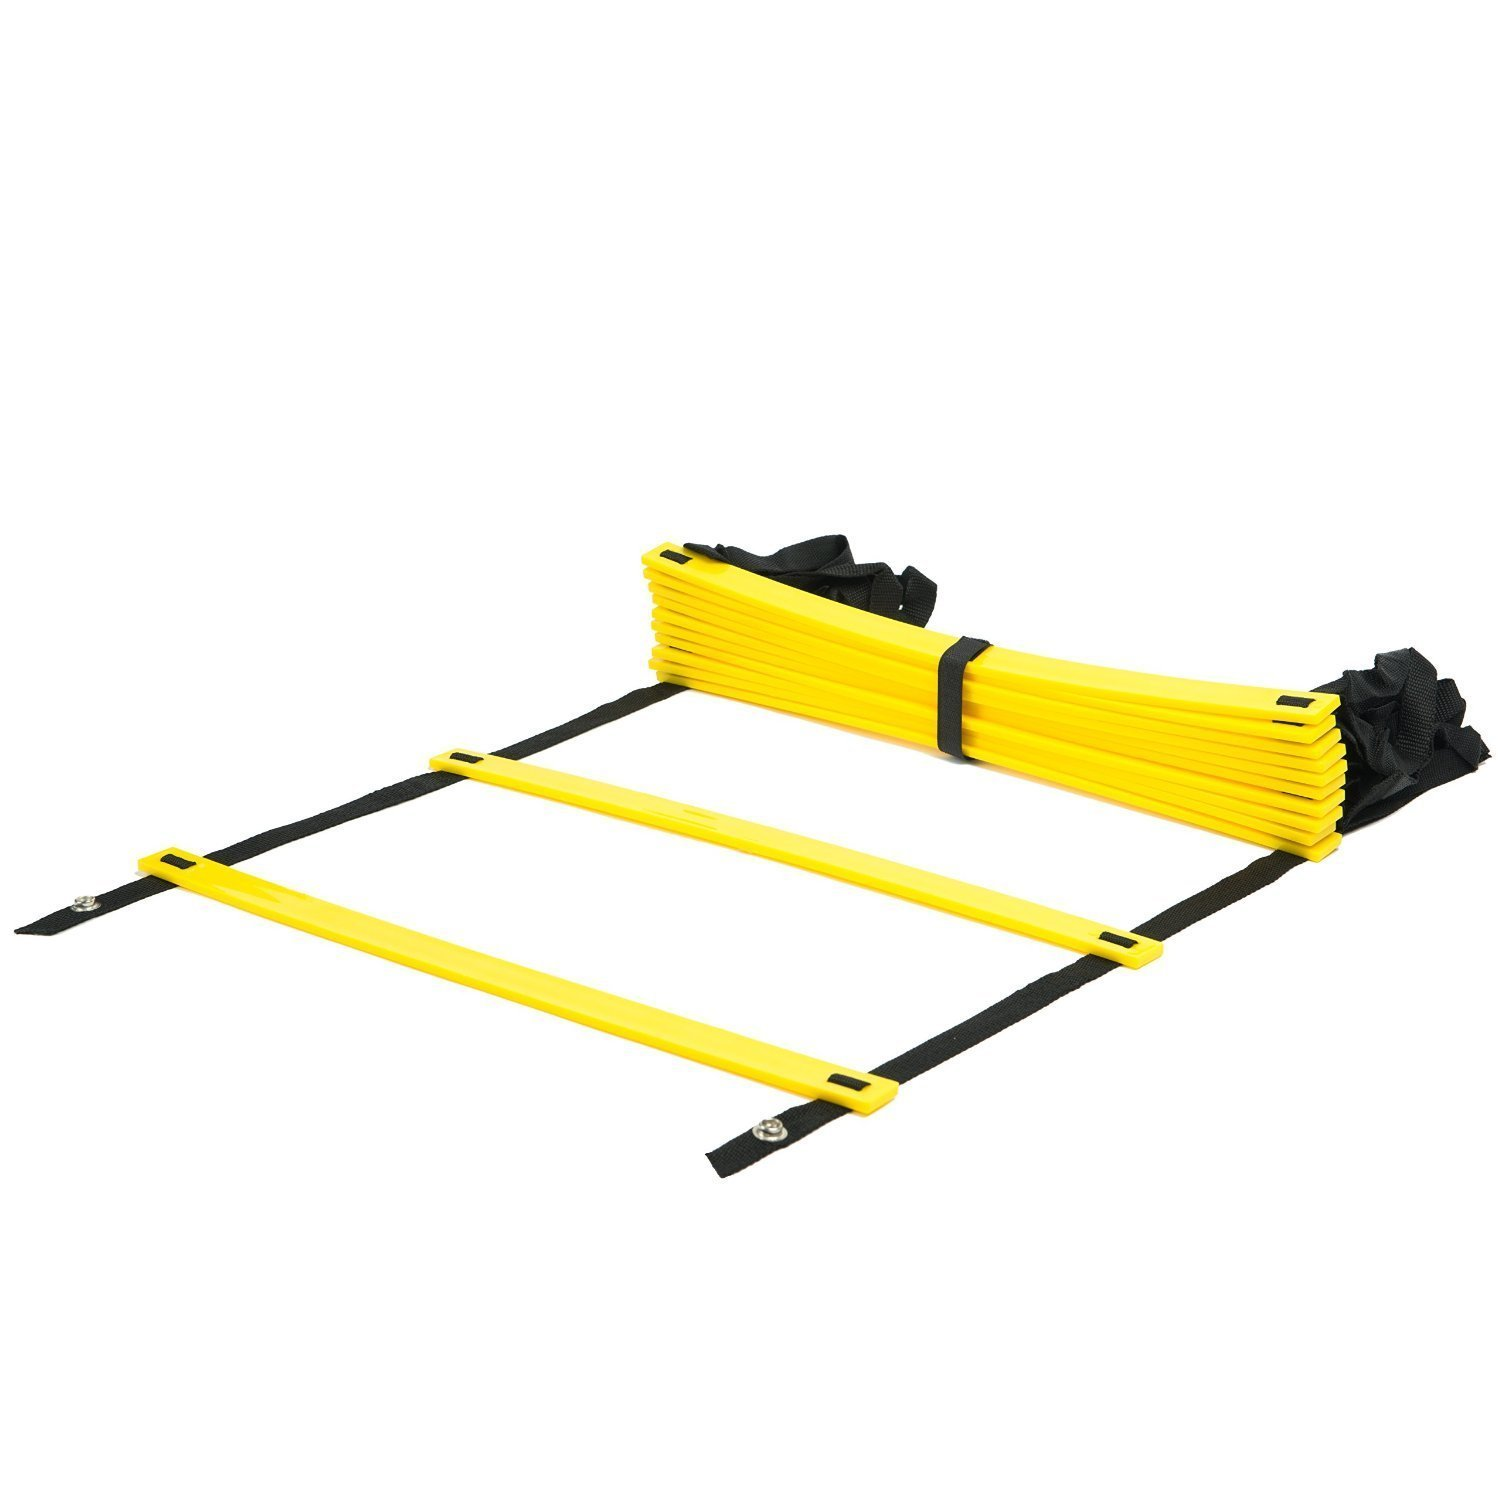 Agility Ladder, Arespark 12 Rung Durable Training Ladders For Soccer,  Speed, Football With Carry Bag